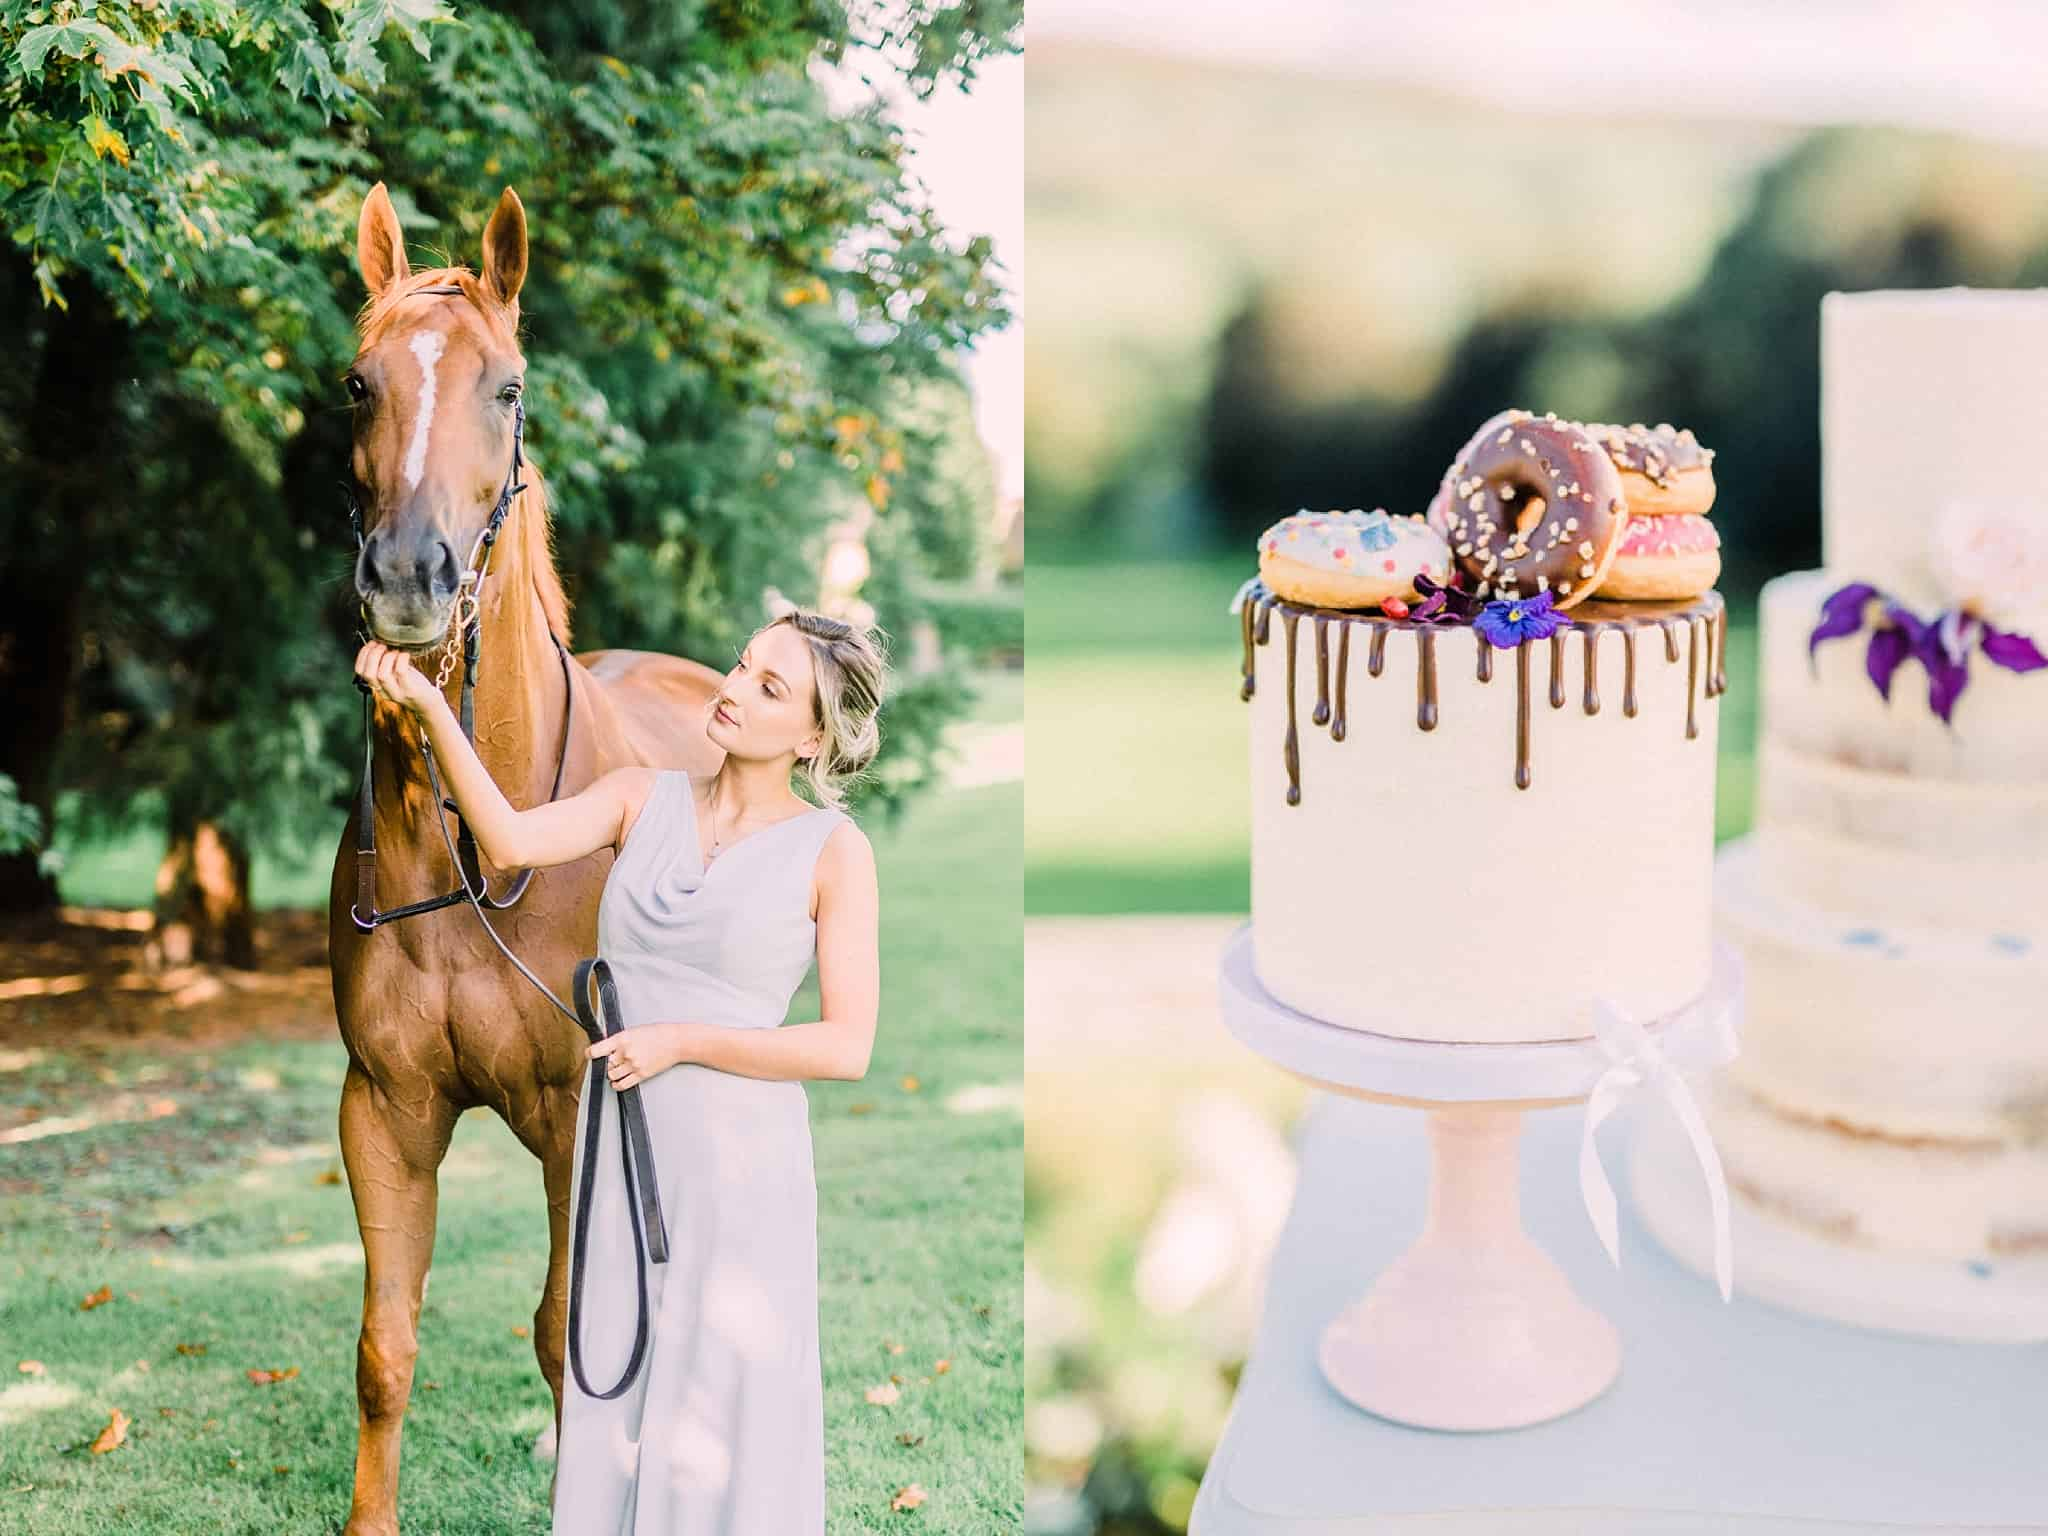 Bridesmaid with horse, Wedding Cake outdoors